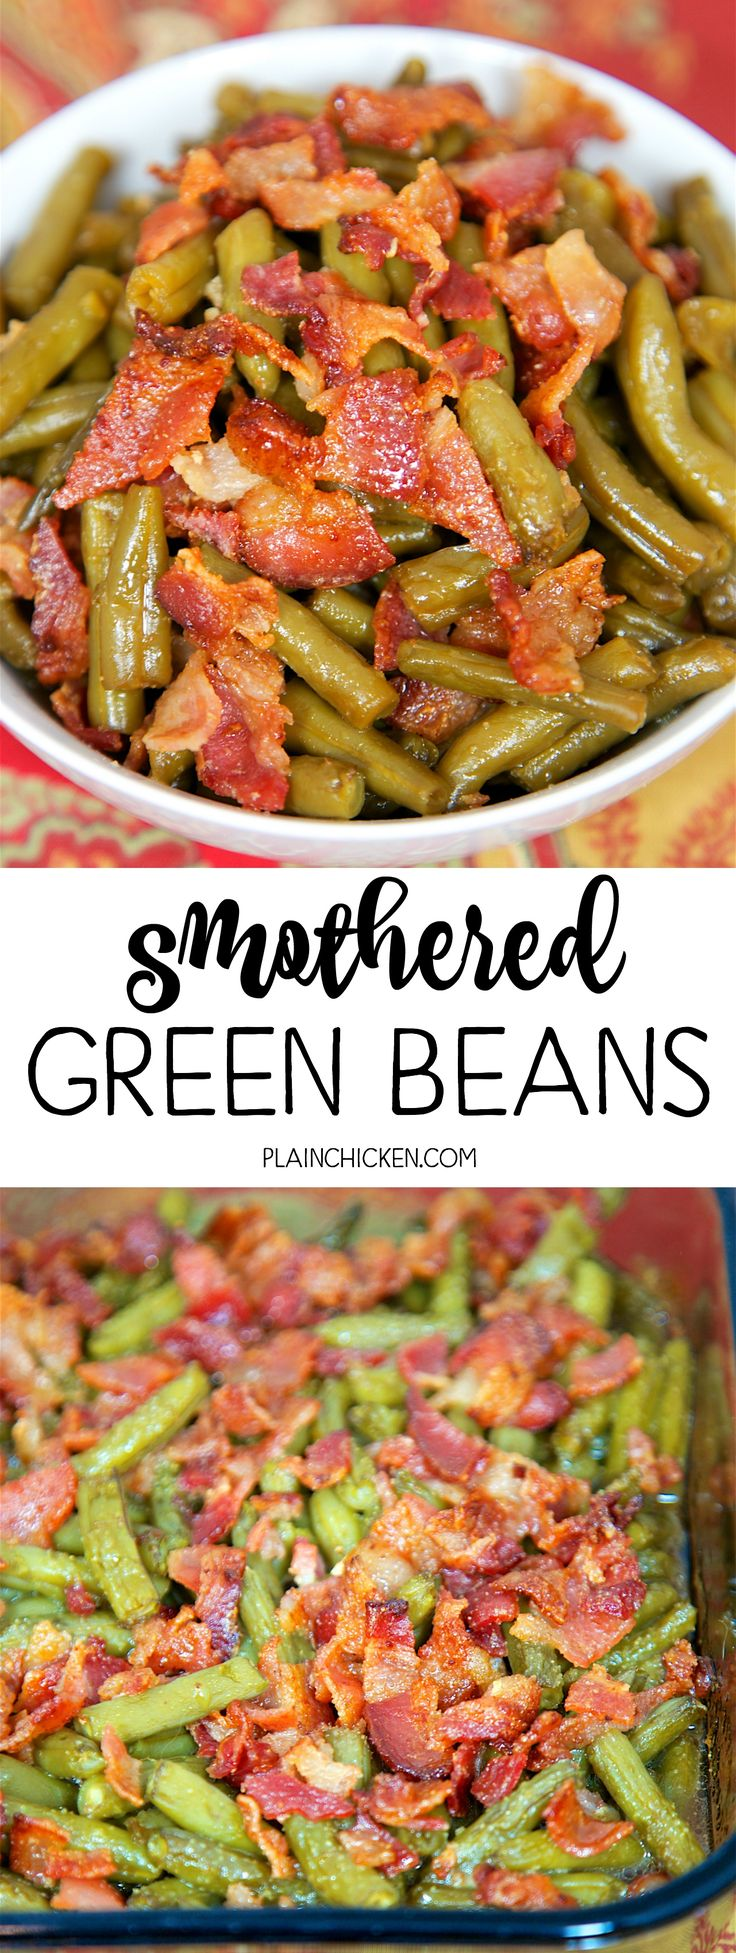 Smothered Green Beans ~ Canned green beans baked in bacon, brown sugar, butter, soy sauce and garlic... SO good!! Great for a potluck - Everyone asks for the recipe! Super easy to make.